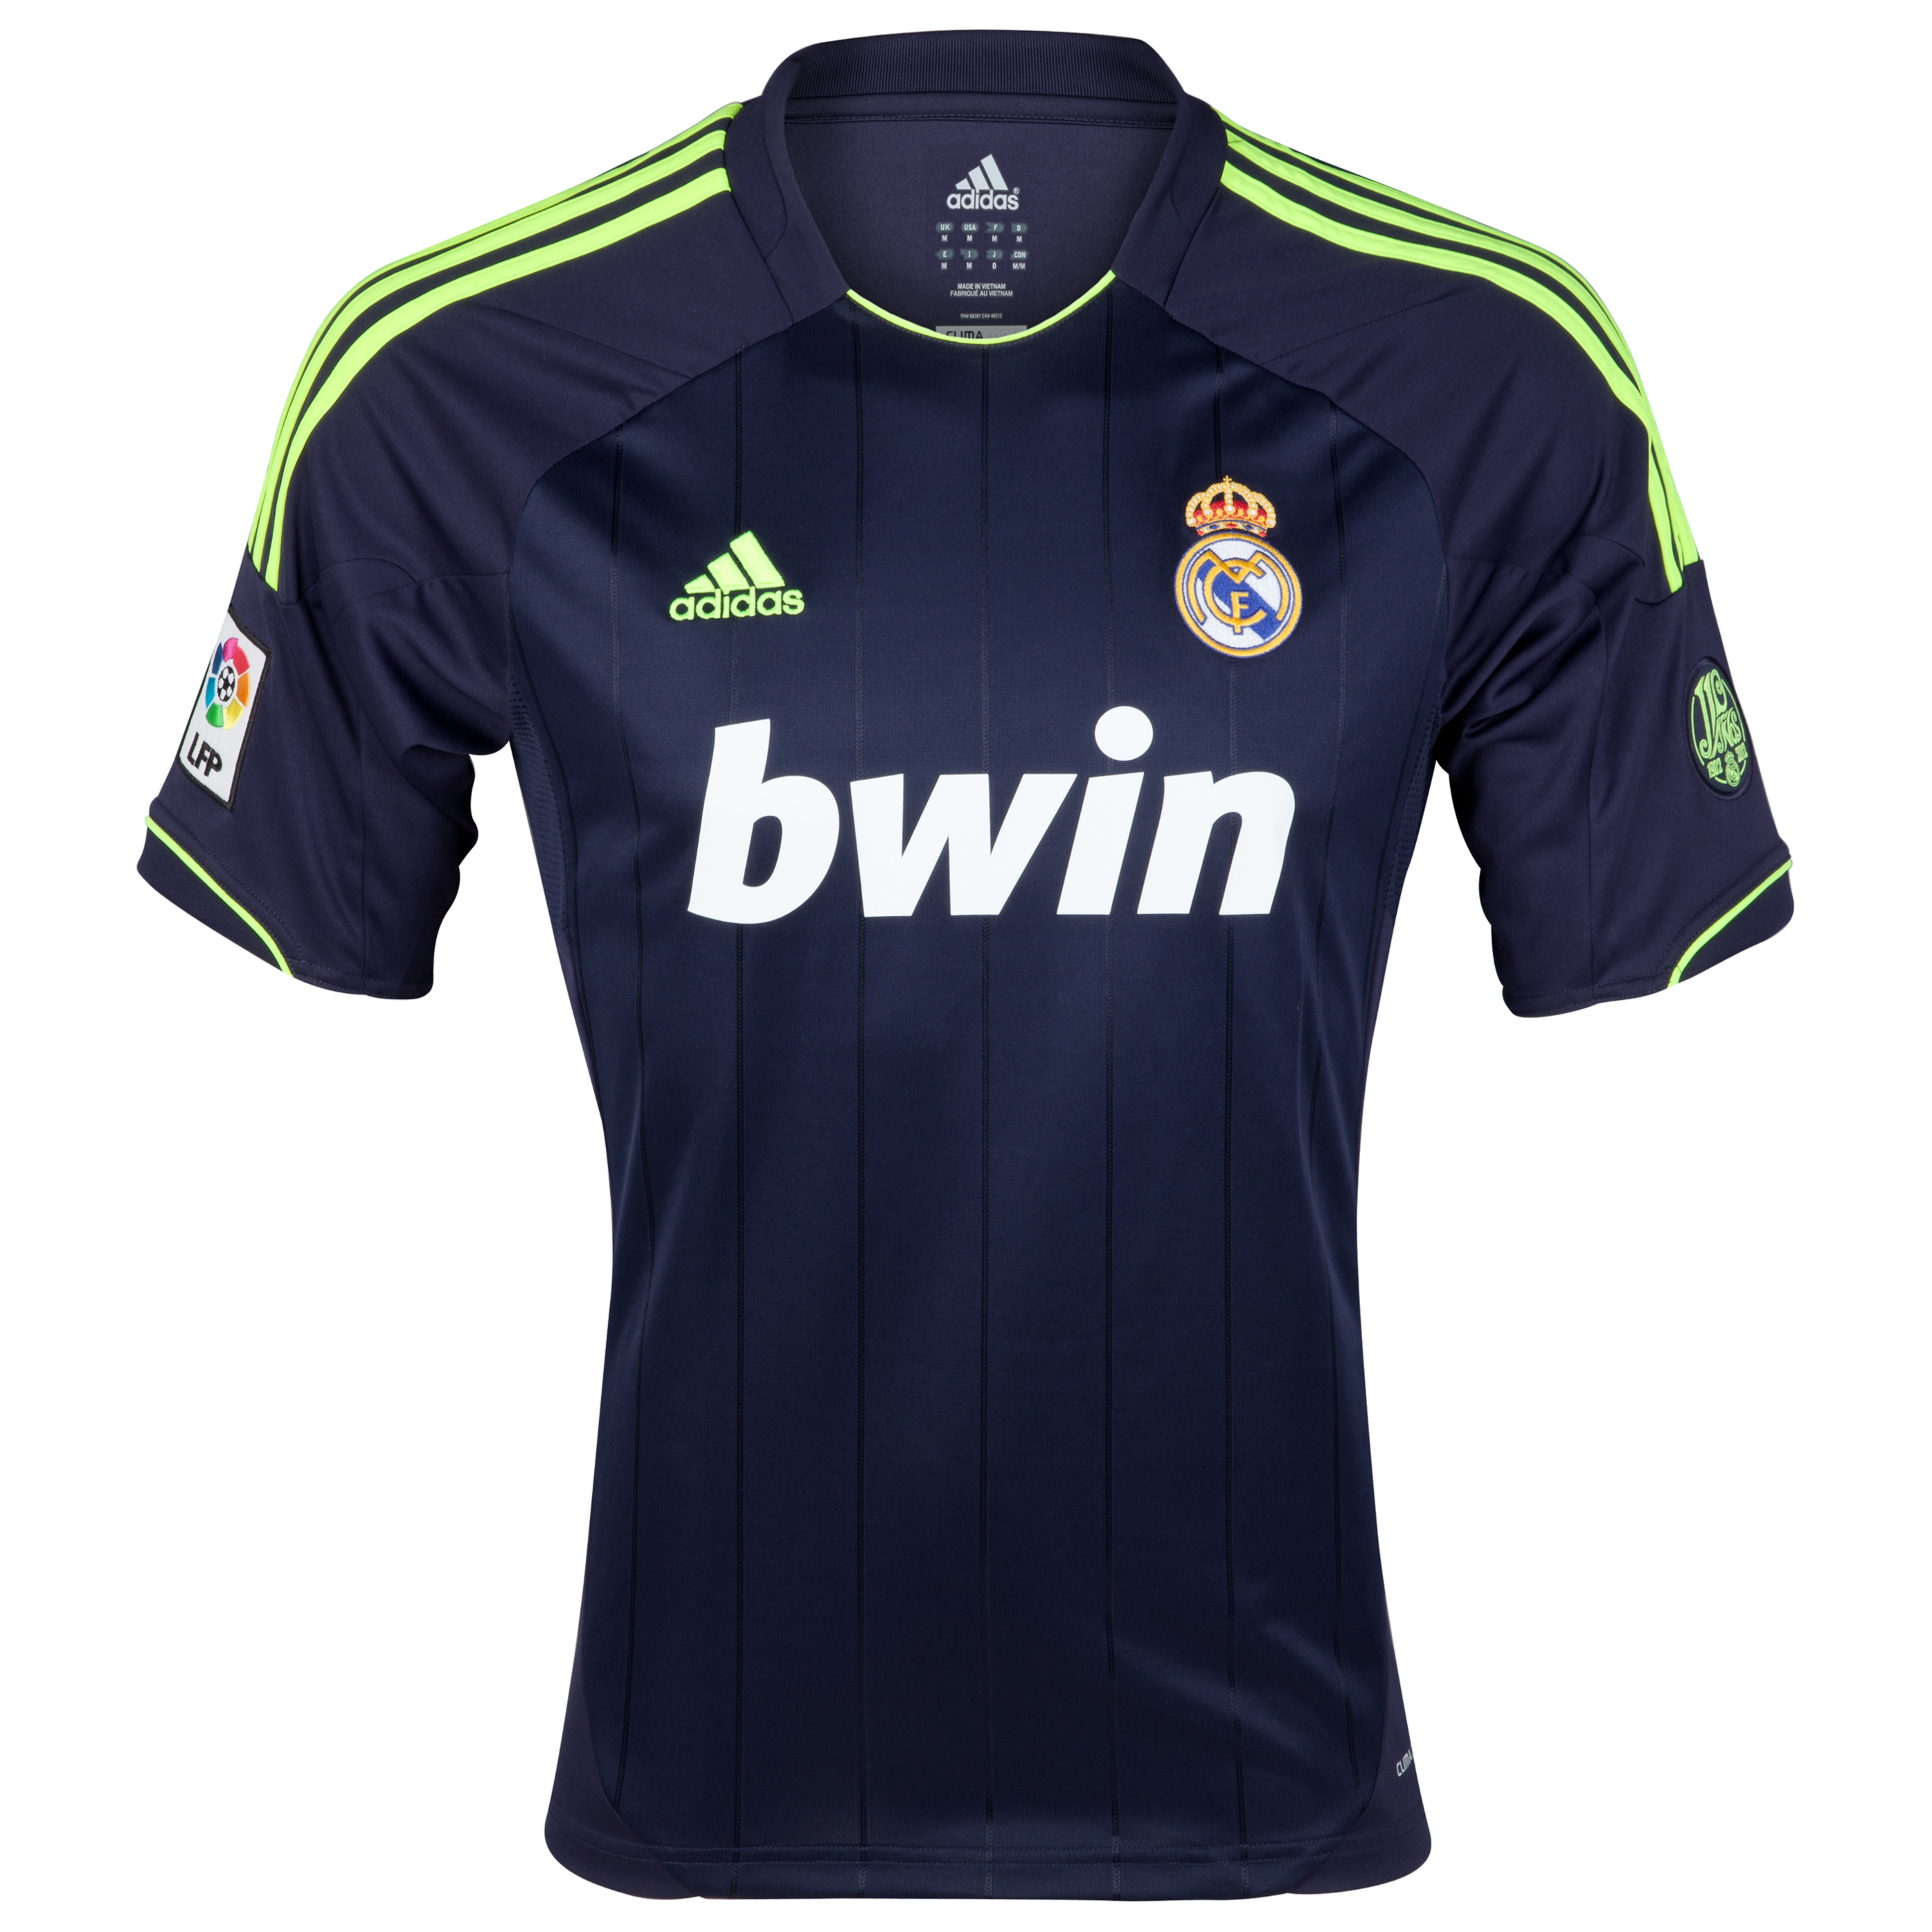 Buy Real Madrid Away Kit 2012/13